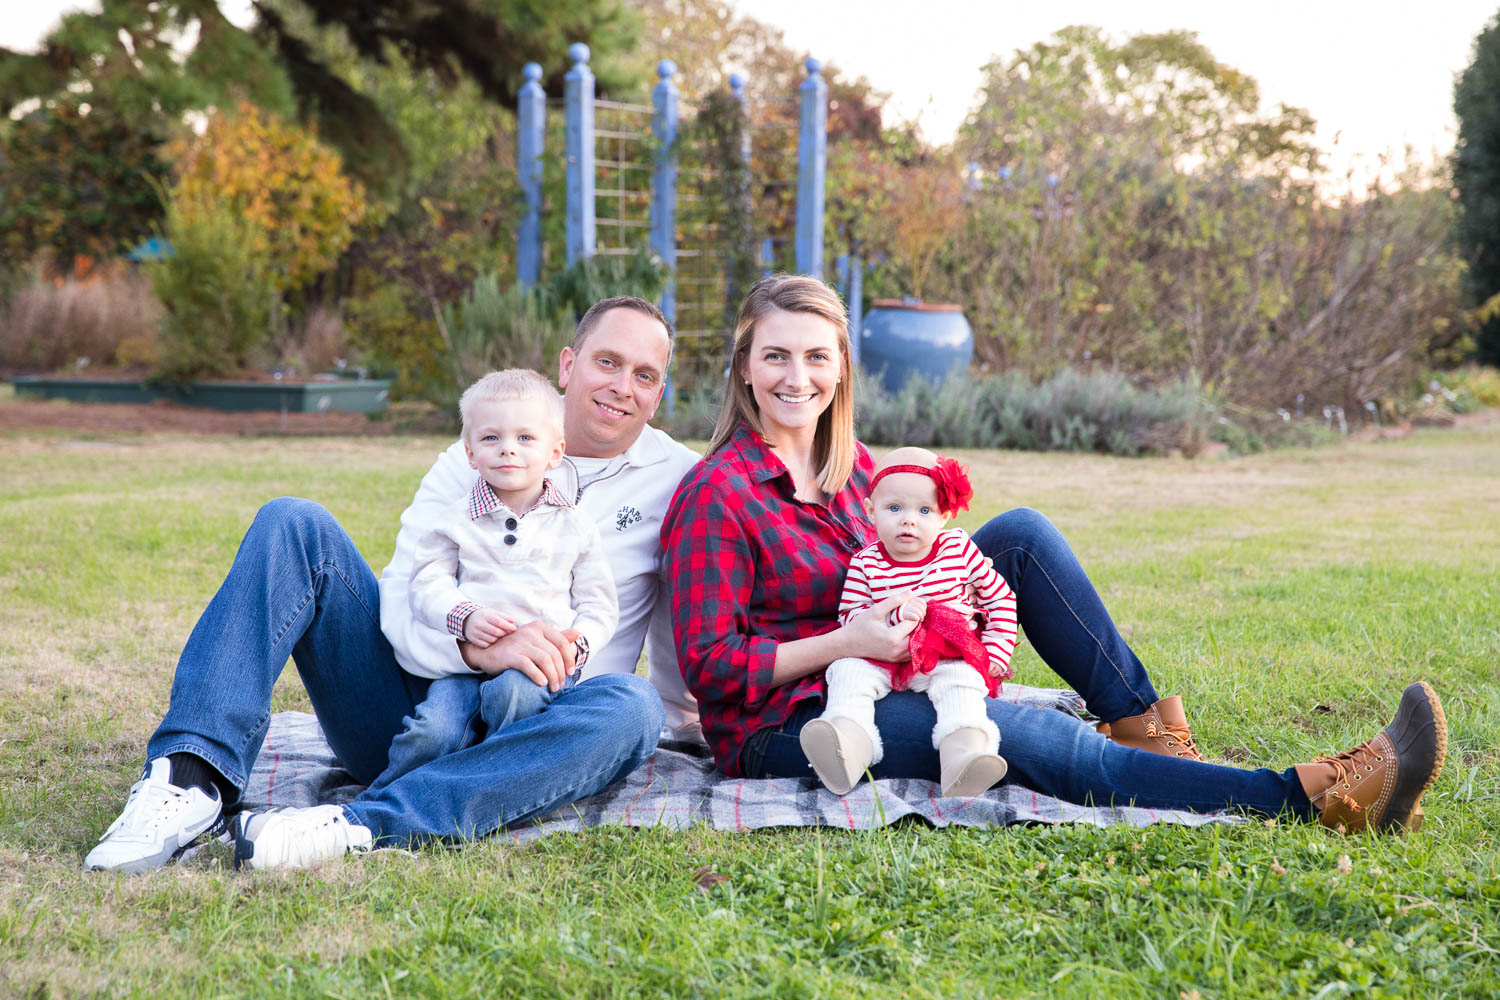 Happy Holidays! - From the Spurling family